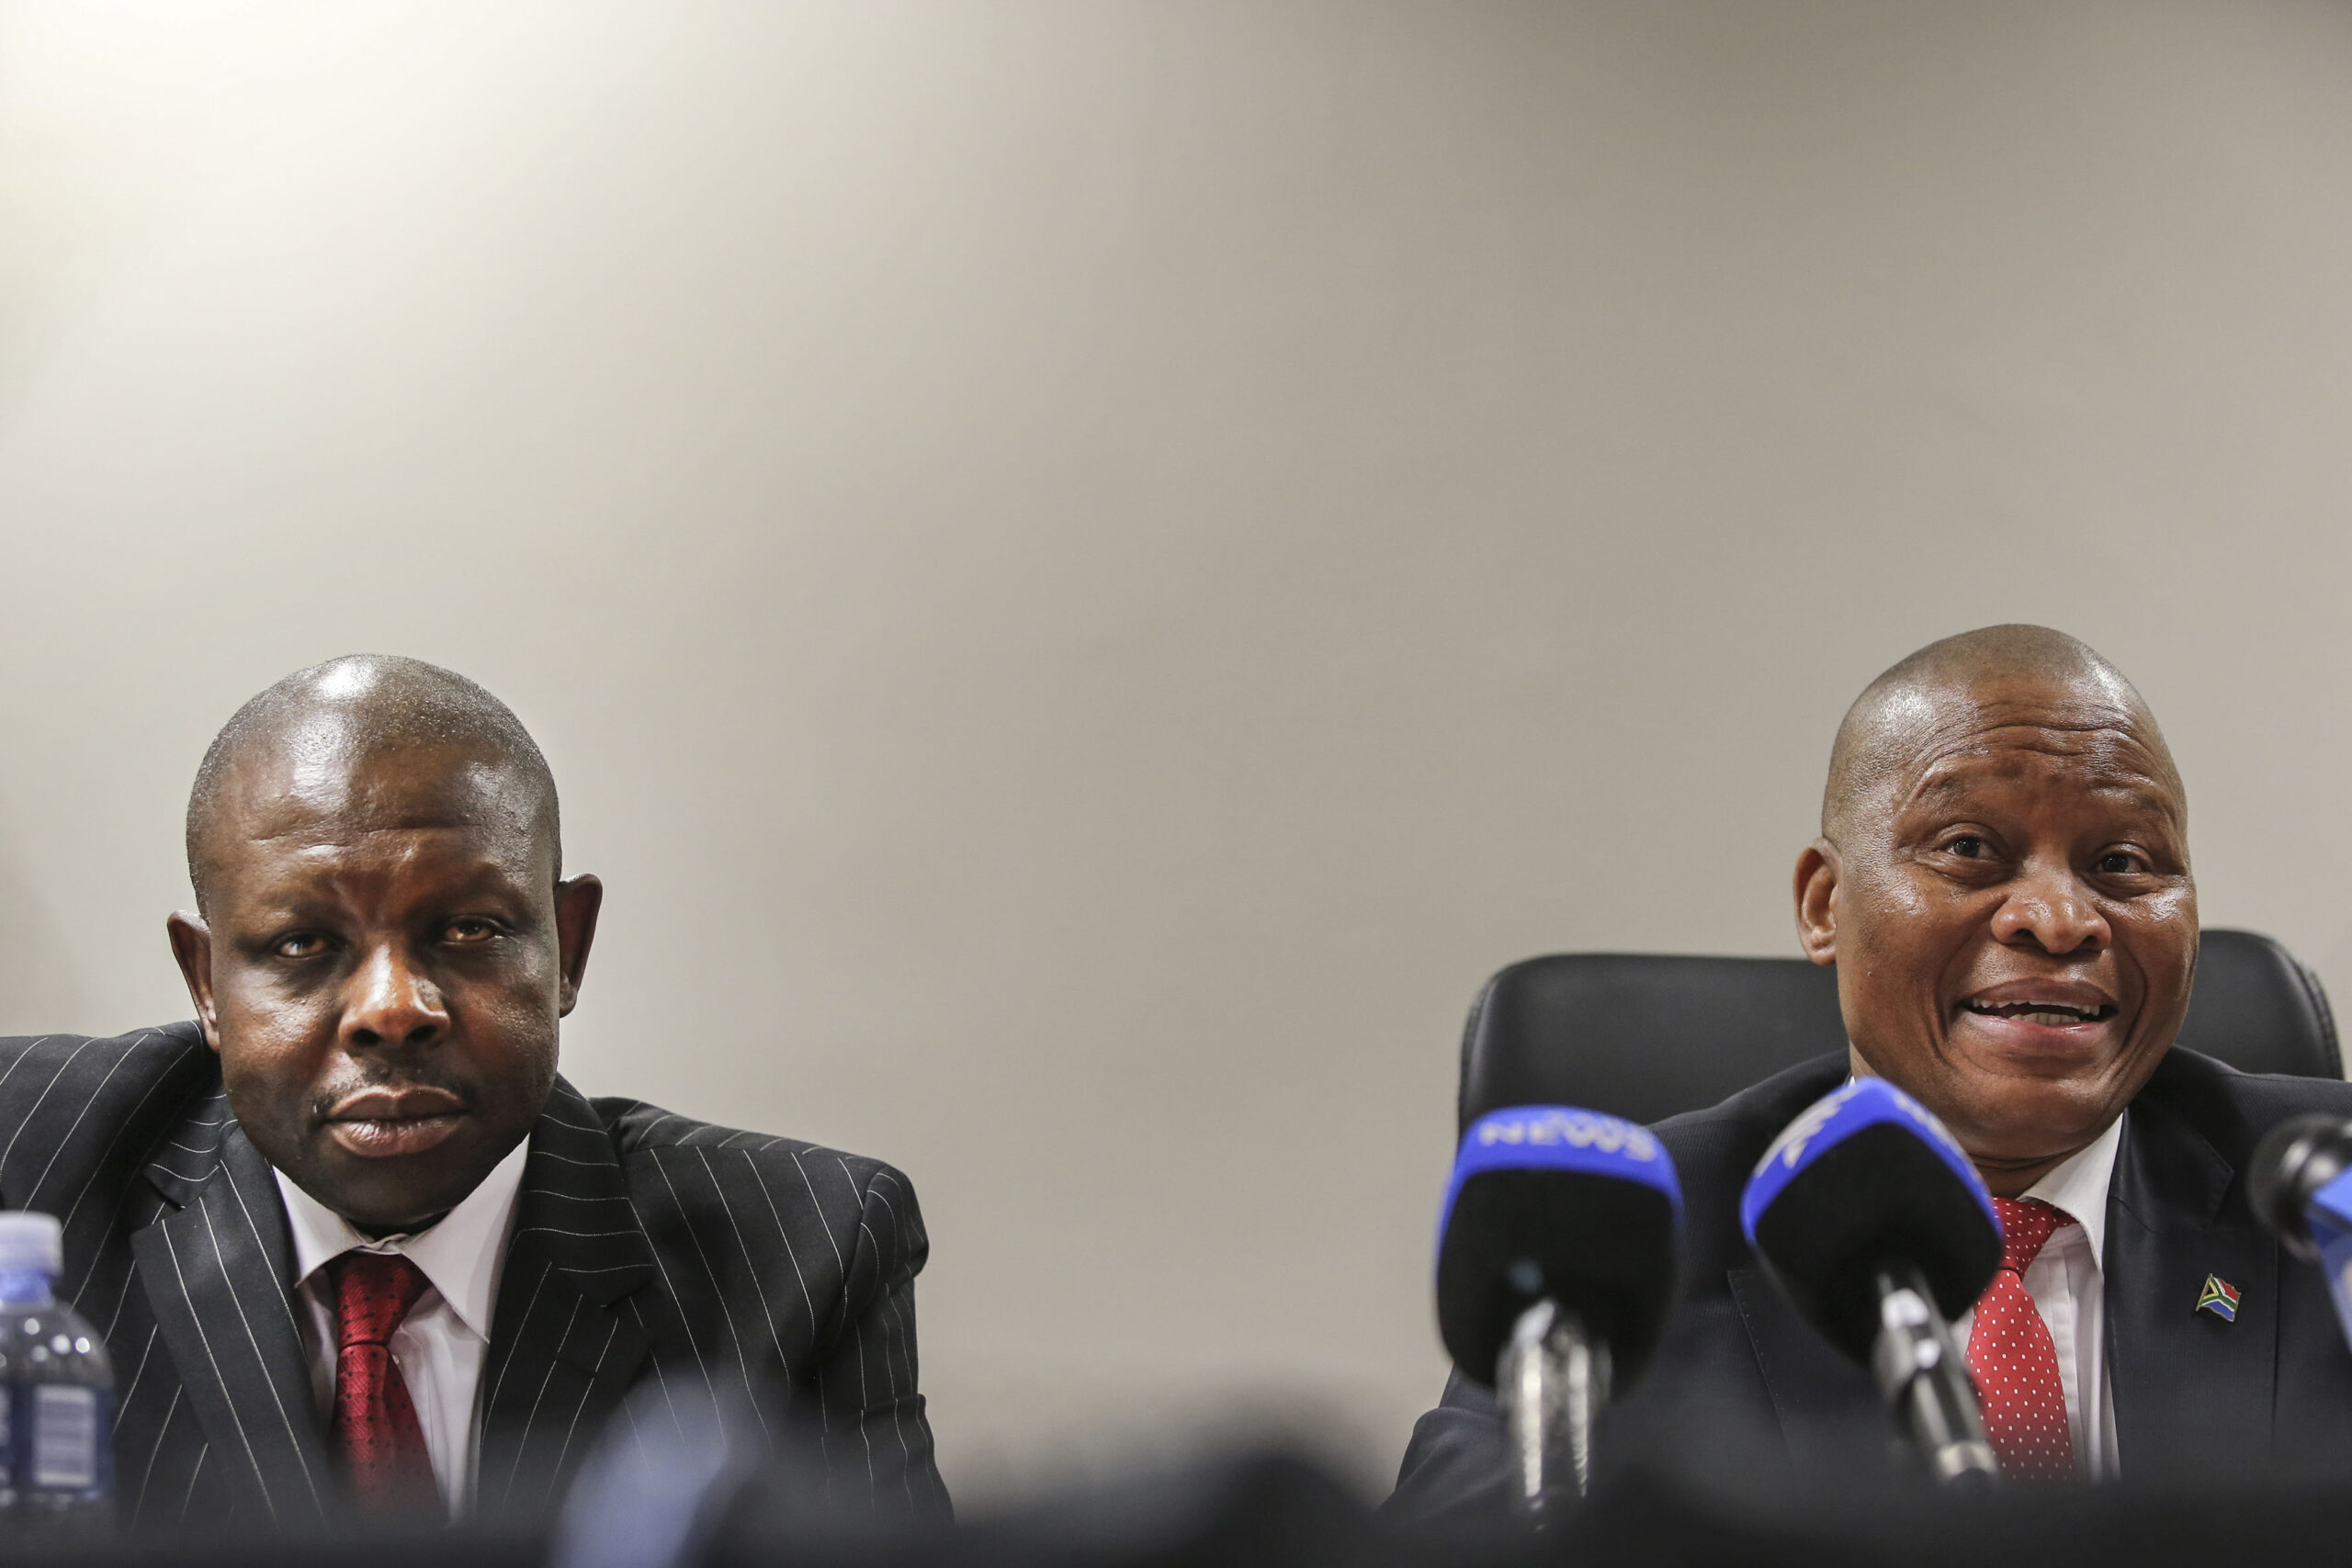 Hlophe says 'assassination plot' is a bid to sully his name - Mail and Guardian